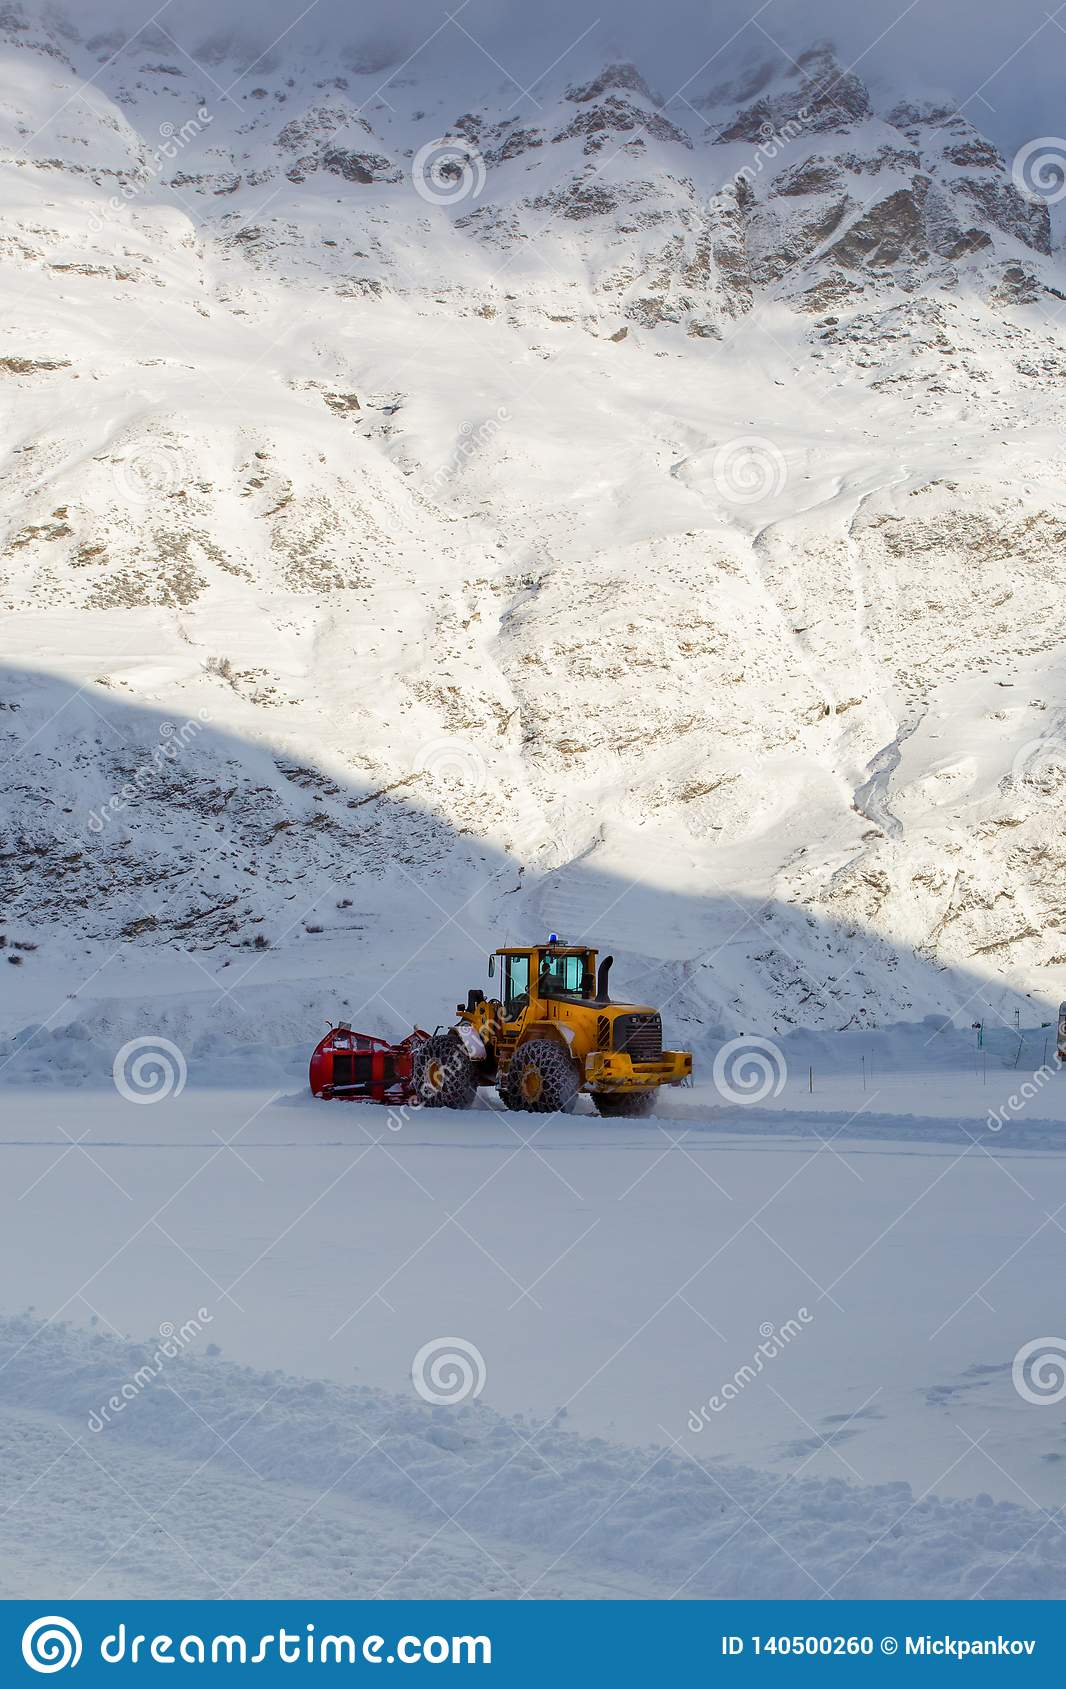 Early morning works equipment for snow removal in the mountains